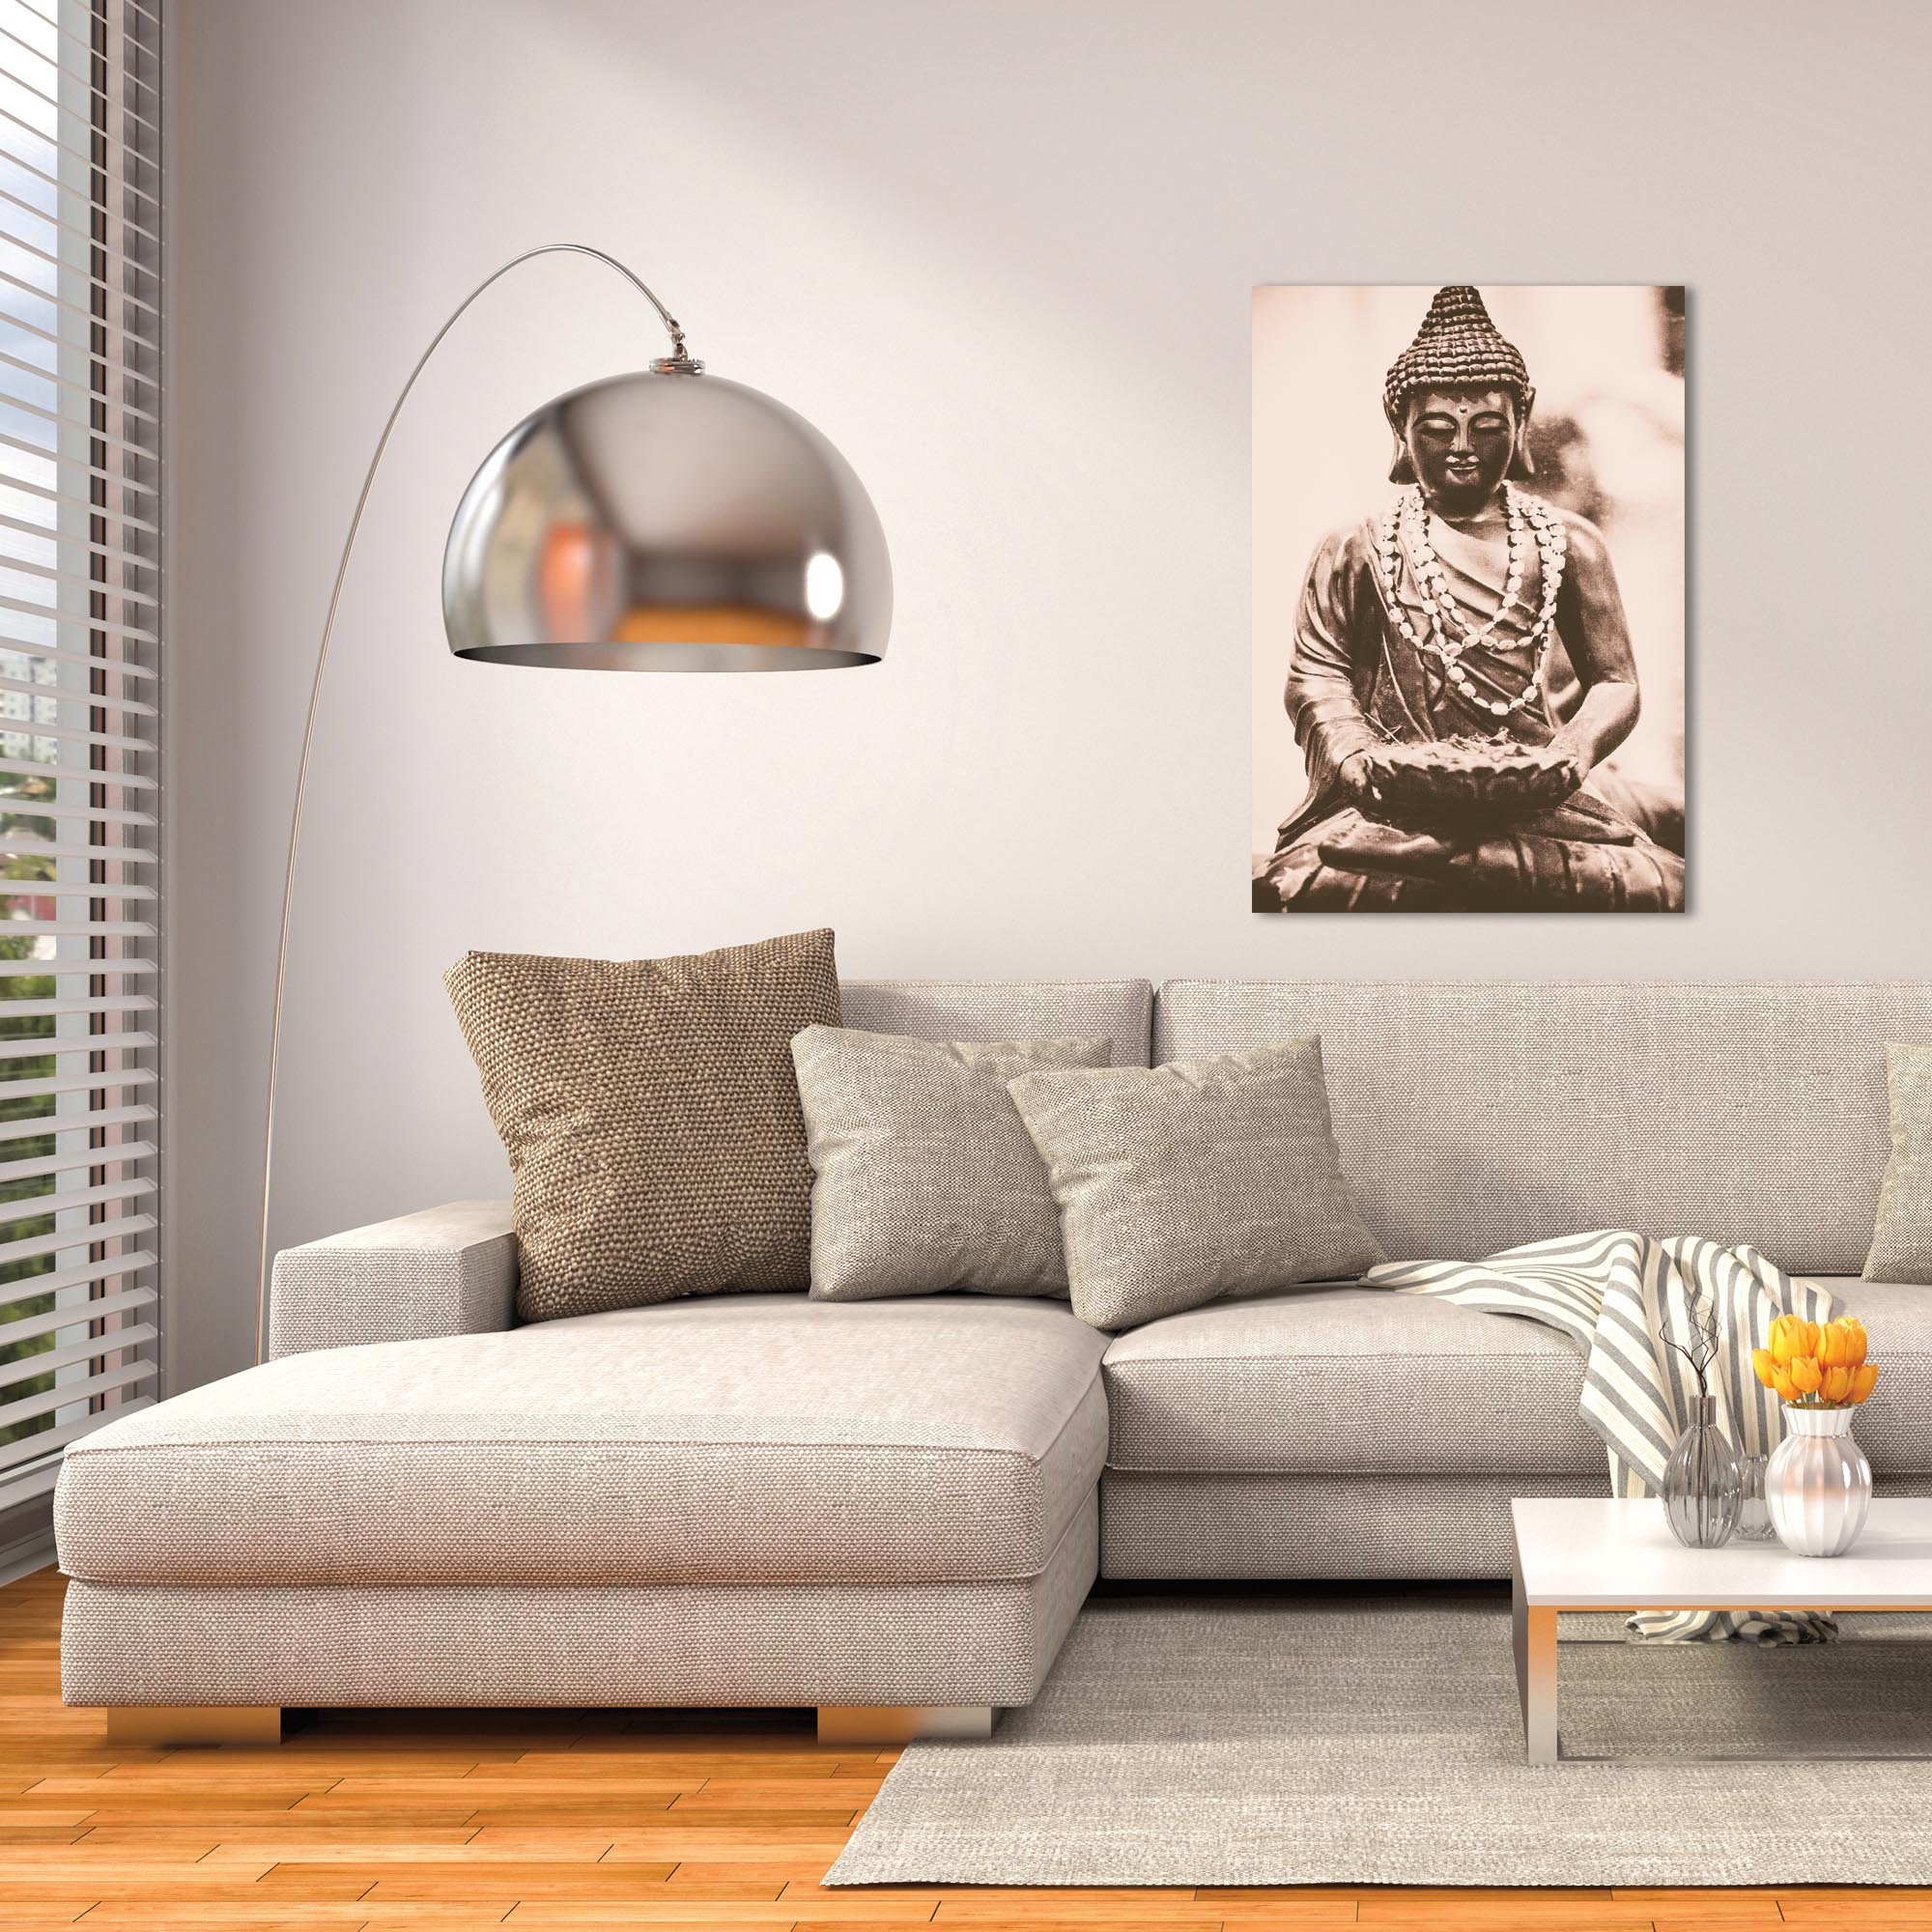 Eclectic Wall Art 'Buddha Statue' - Religion Decor on Metal or Plexiglass - Lifestyle View